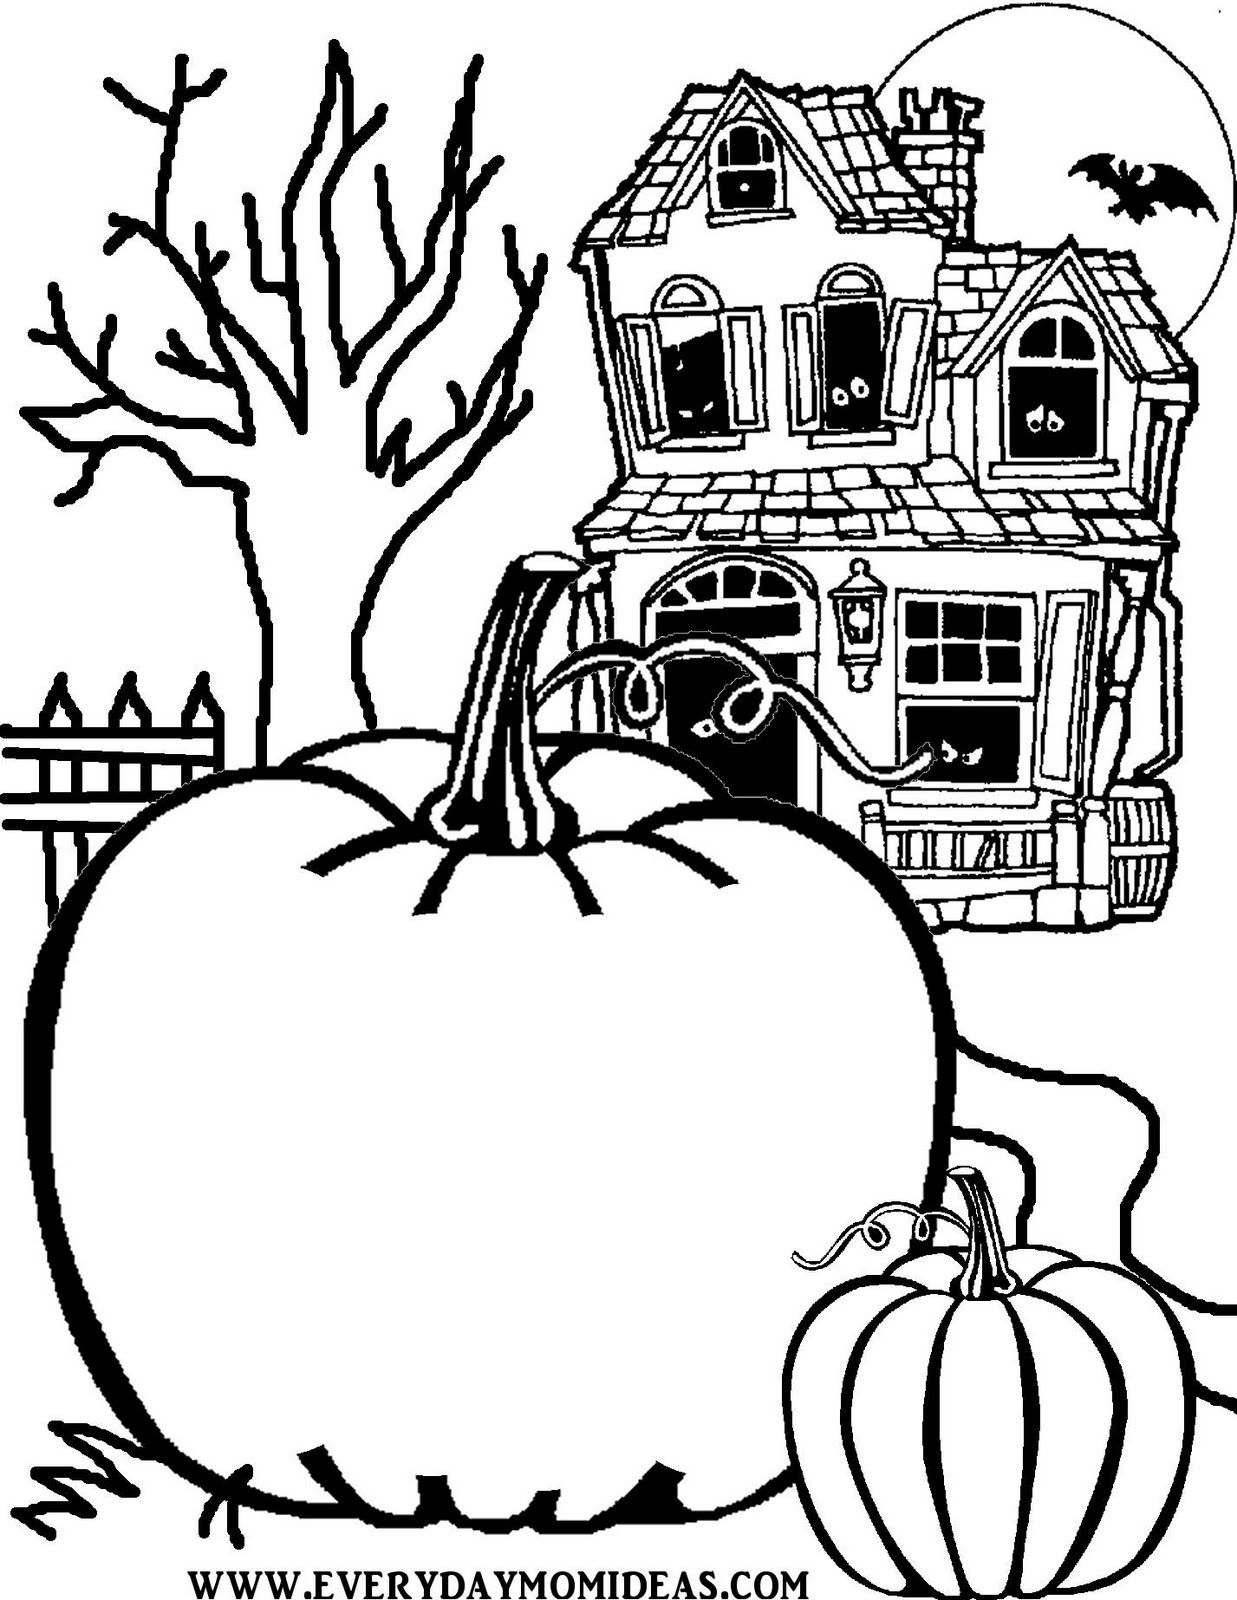 Create Your Own Jack O Lantern Halloween Coloring